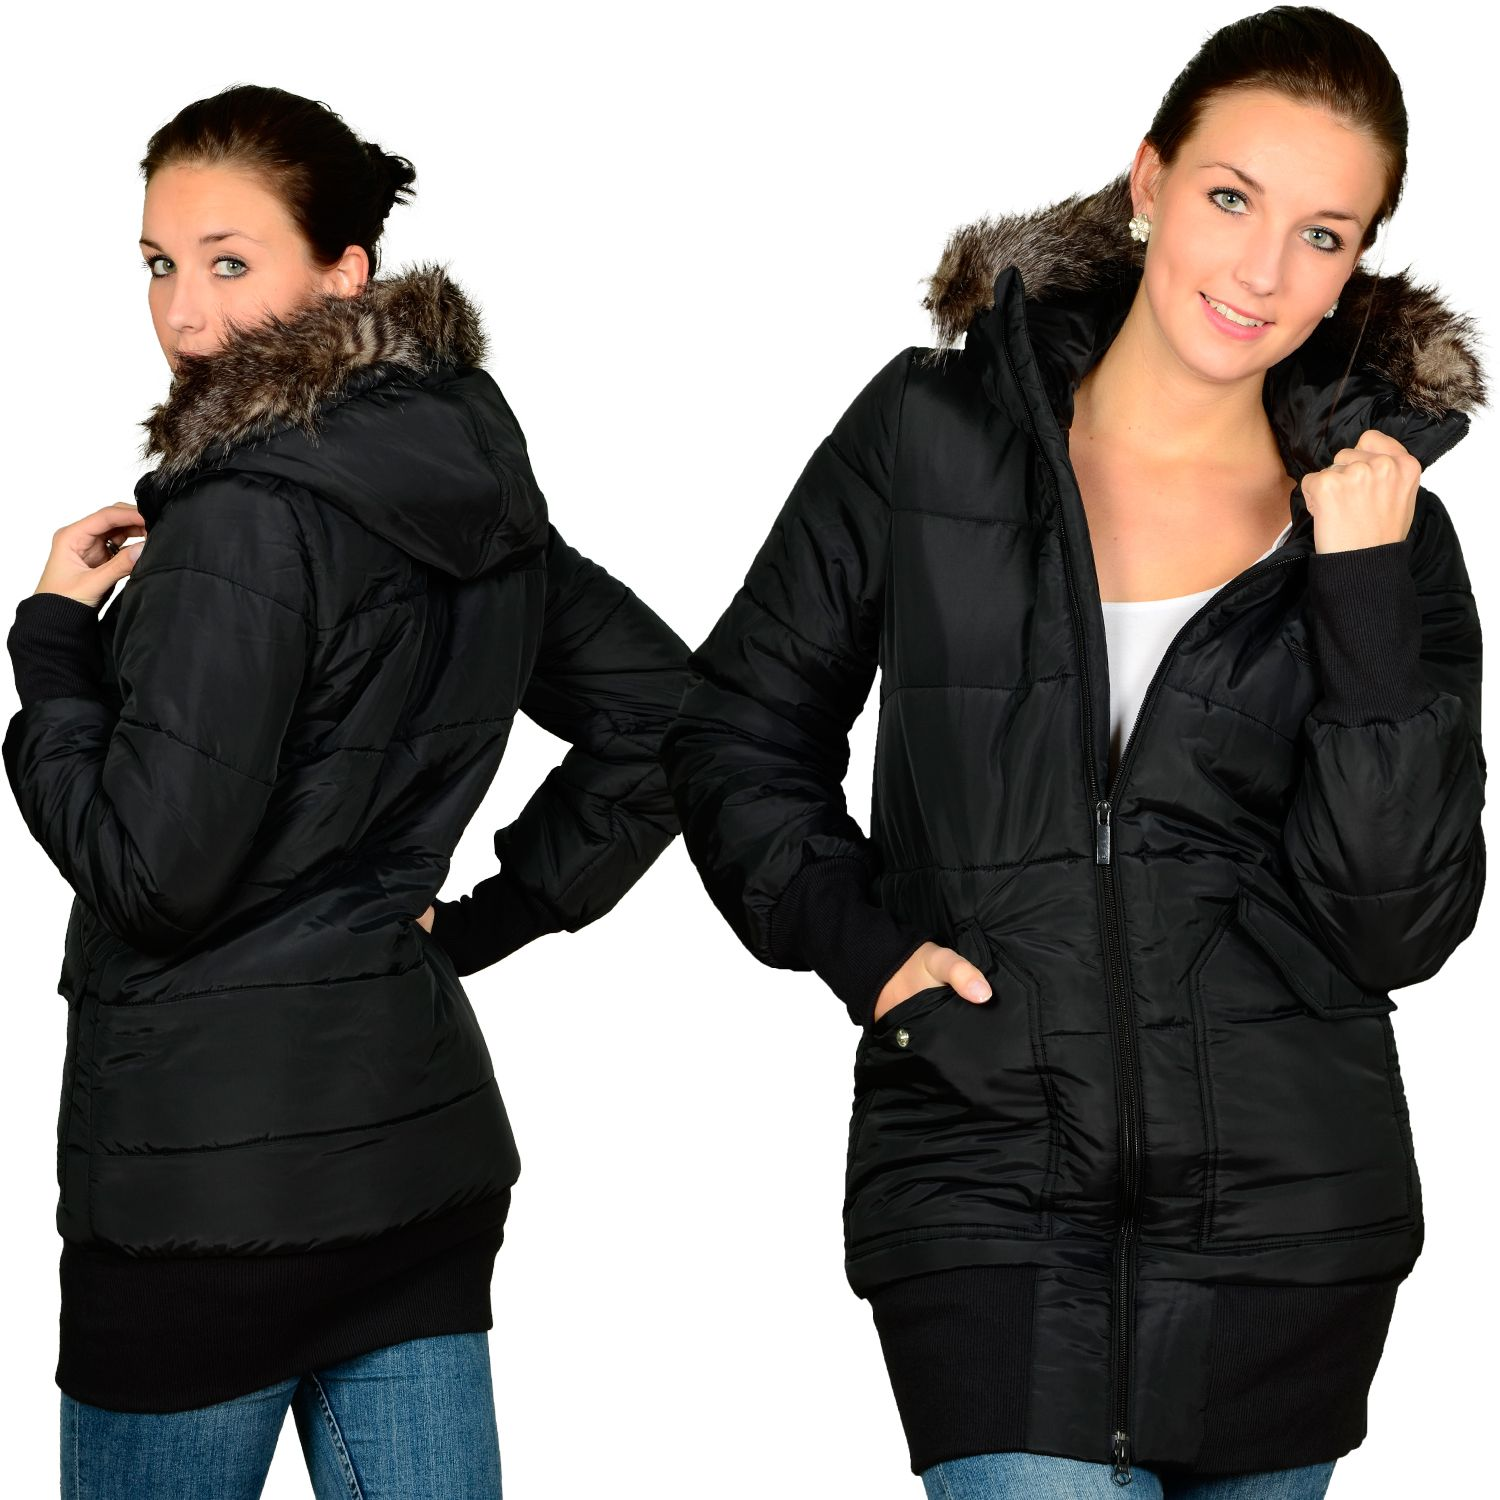 Amazing Winter Jackets for Women : Winter Jackets For Women 5 ...